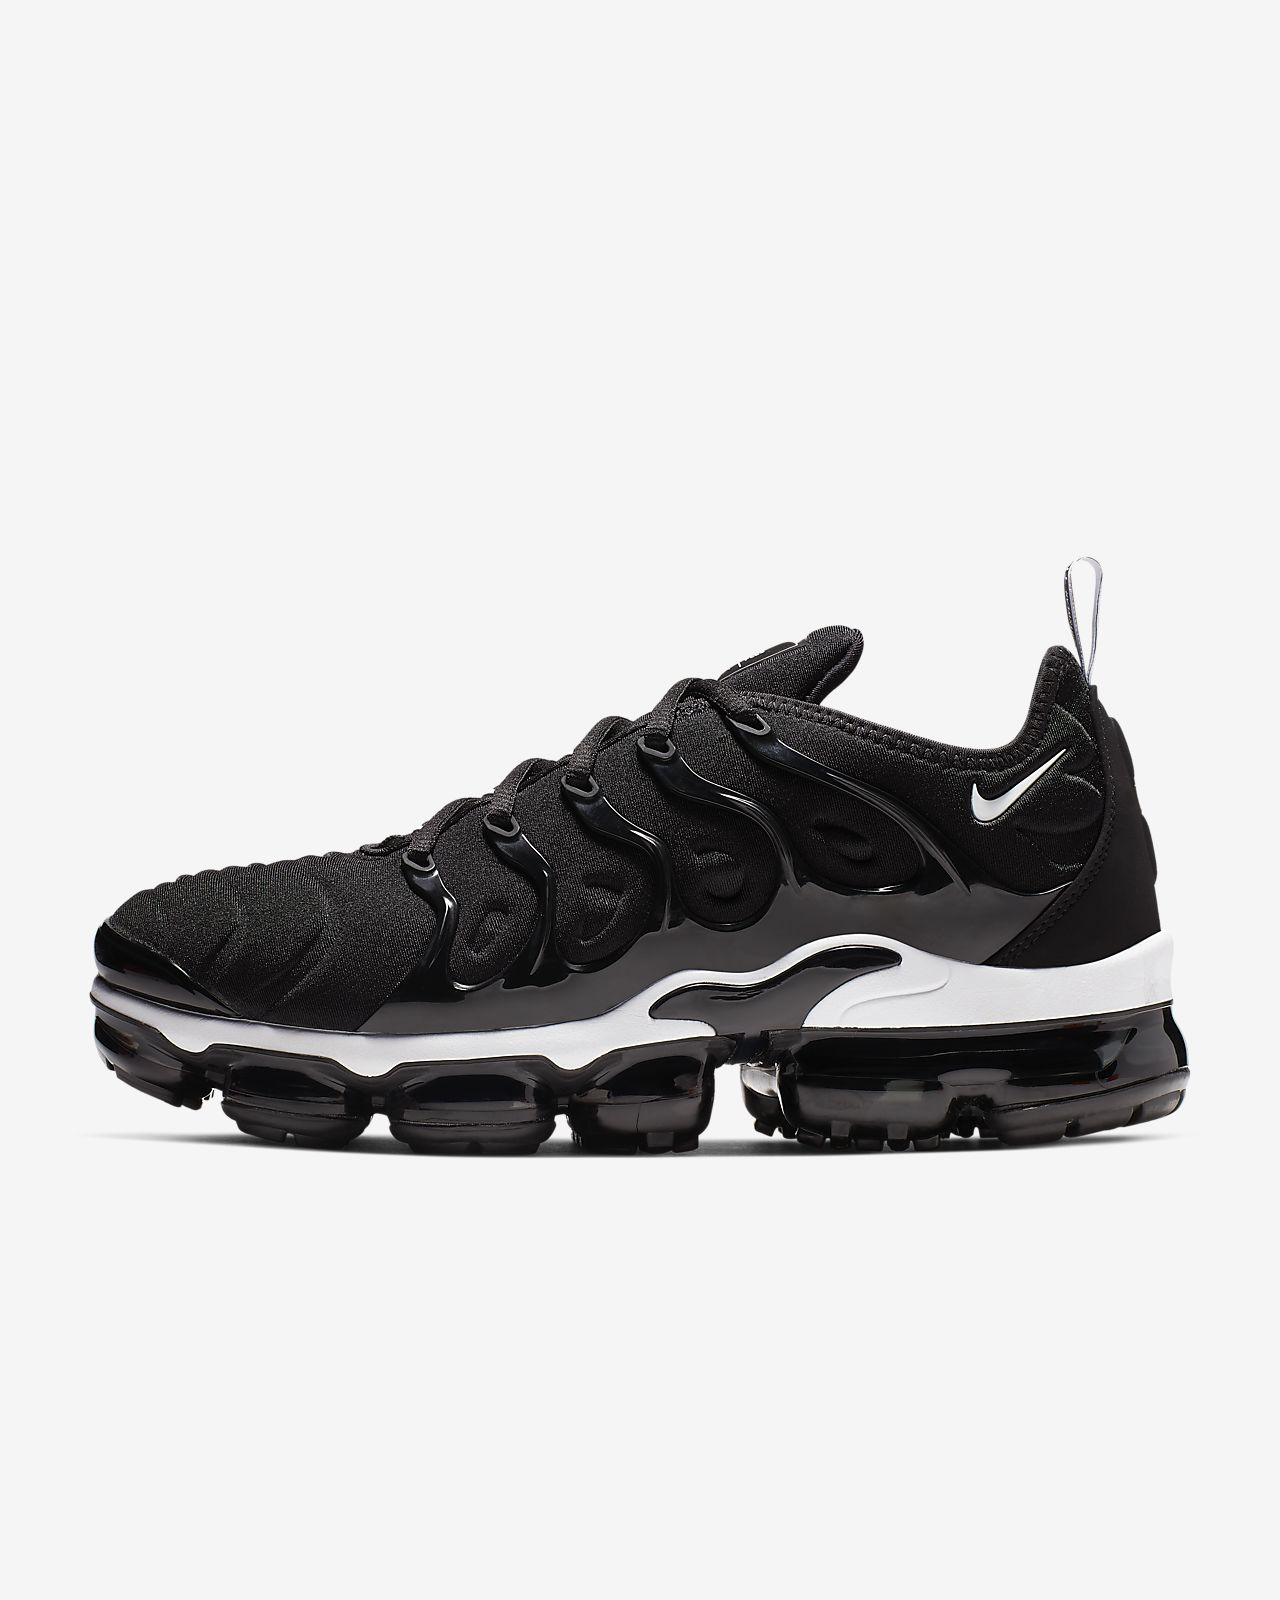 6f3c7aed19d Nike Air VaporMax Plus Men s Shoe. Nike.com CA